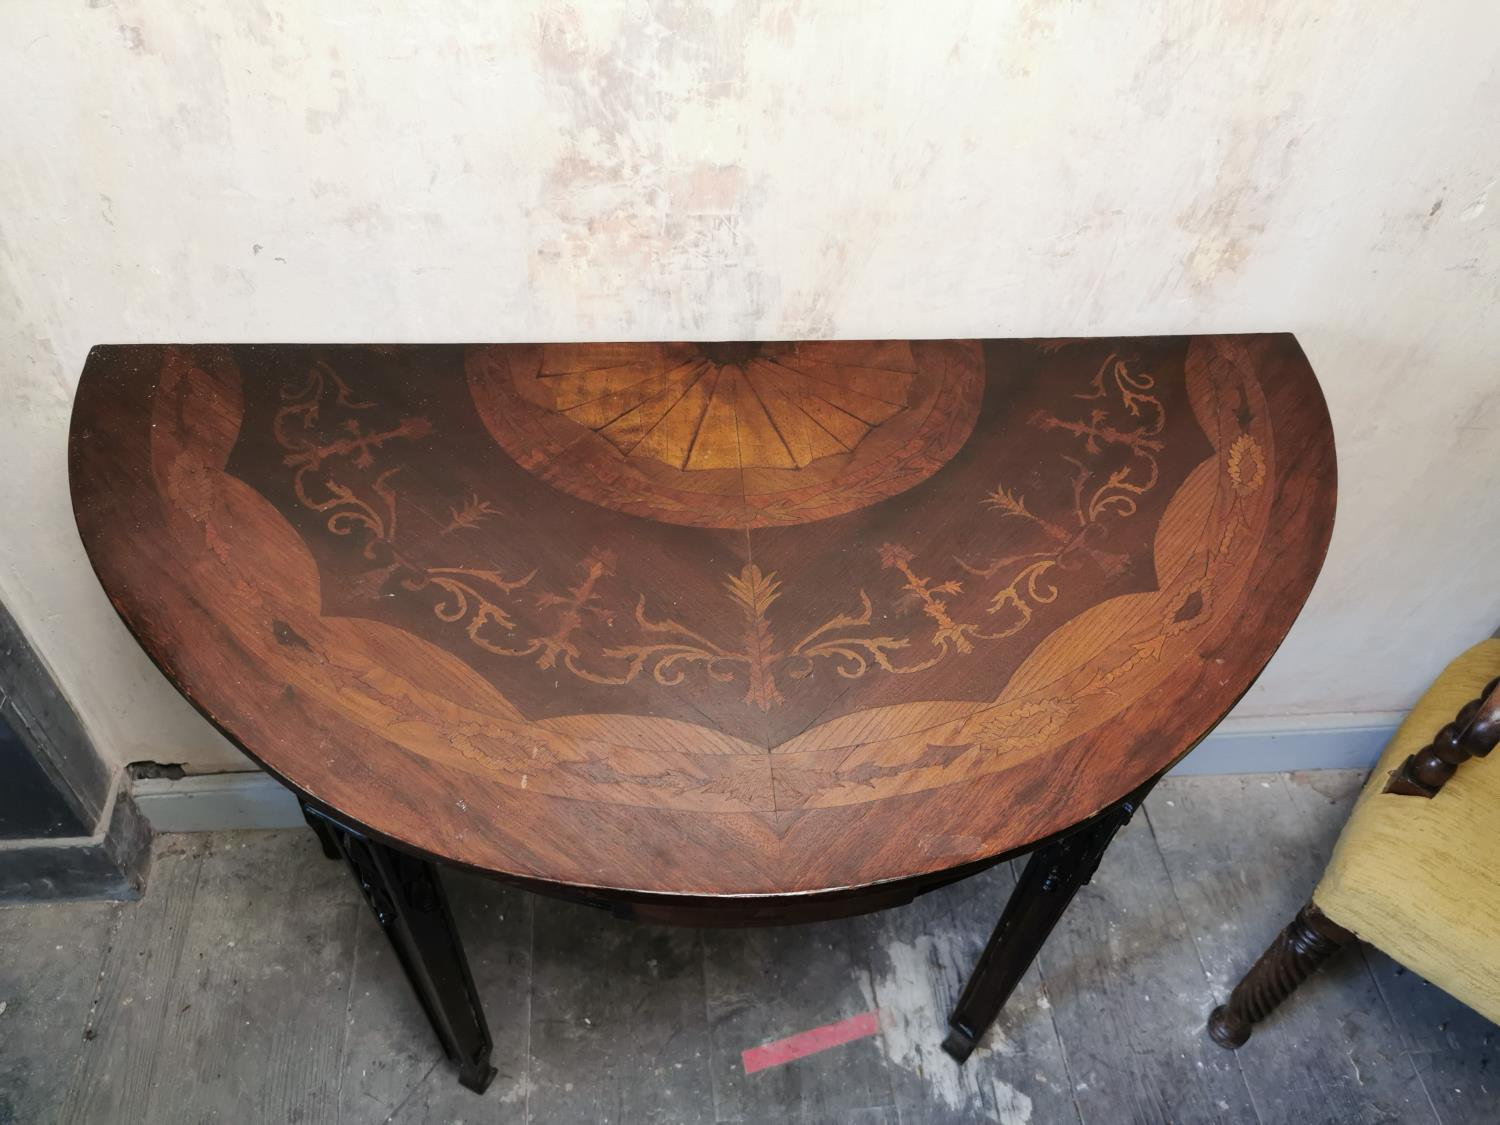 Pair of 19th C. mahogany and satinwood inlaid demi-lune tables - Image 3 of 4